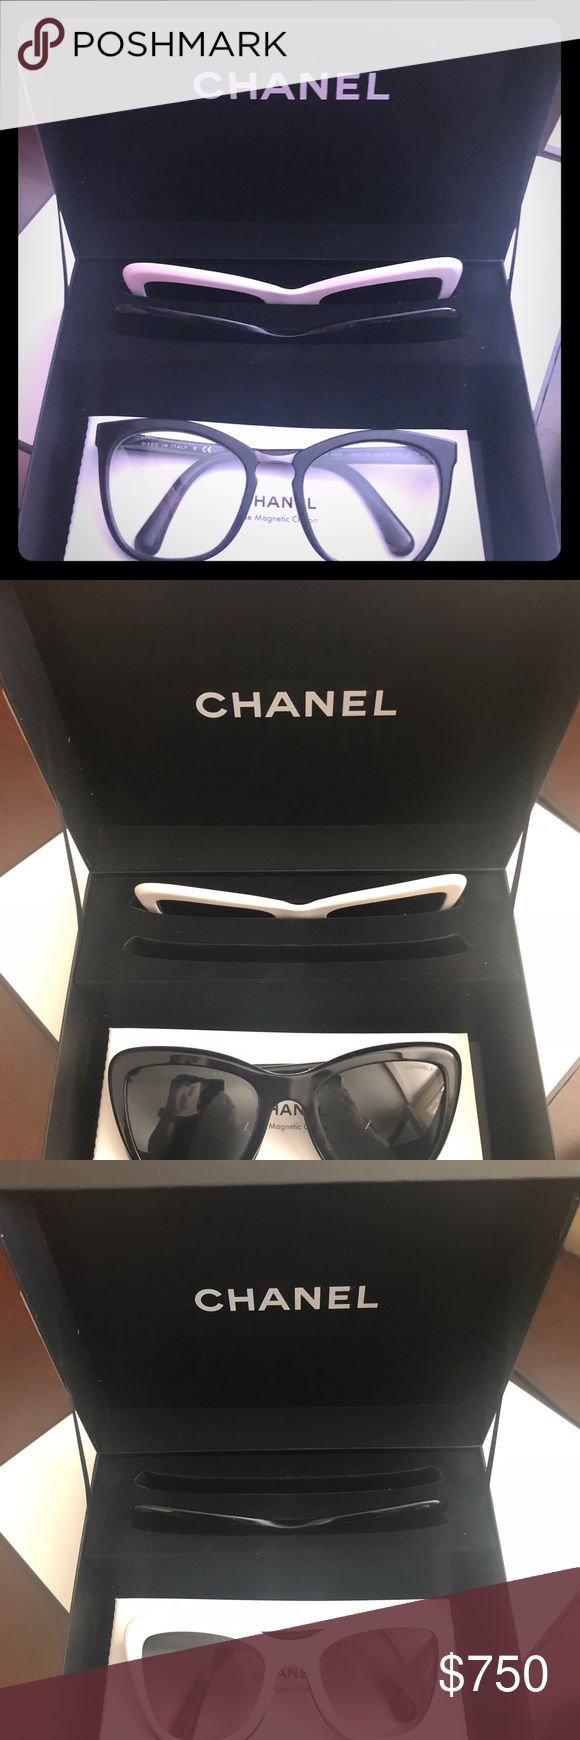 229ea7a921a1d Chanel summer 2018 magnetic clip sunglasses These glasses are a limited  edition style that just came